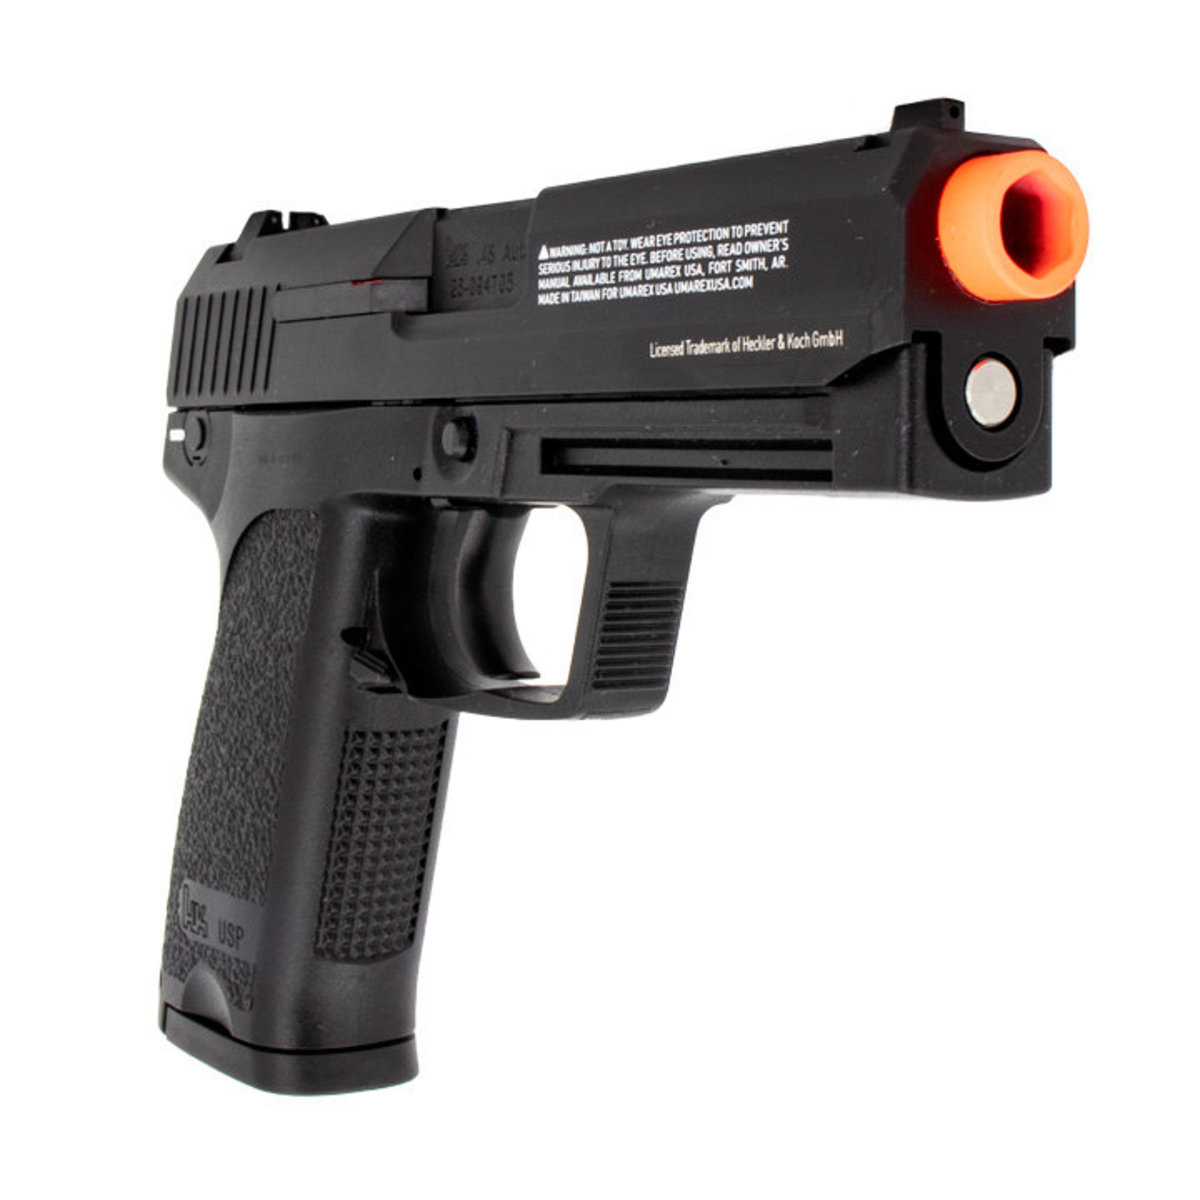 View larger image of Umarex H&K USP Full Size GBB Airsoft Pistol (KWA)